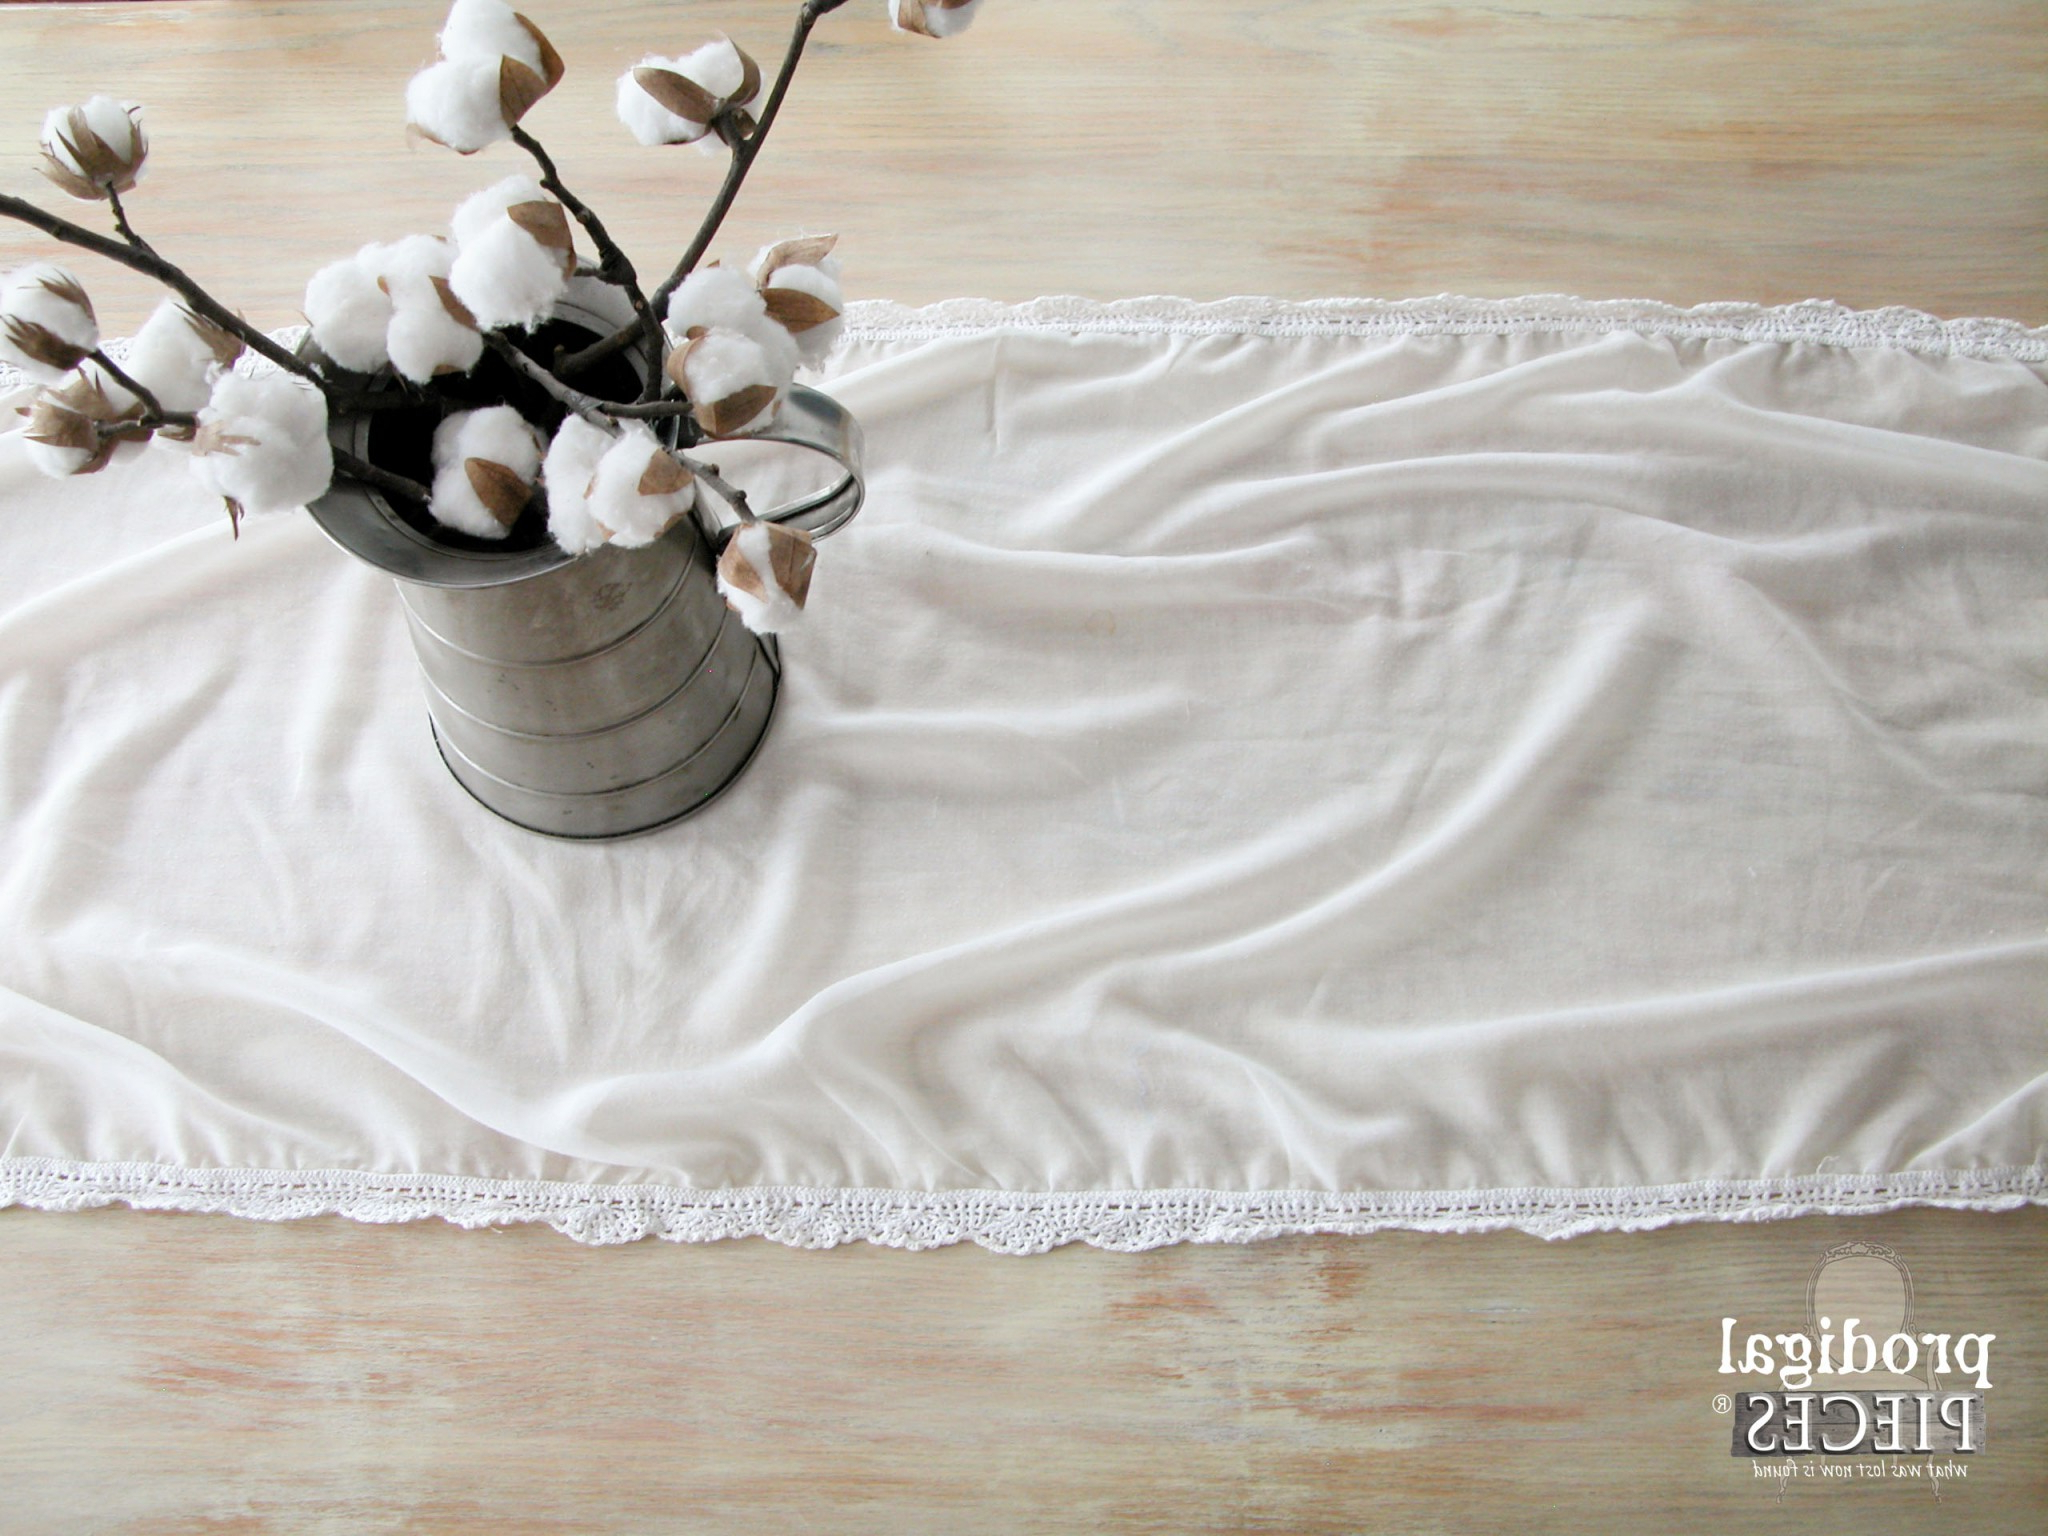 Famous Handmade Whitewashed Stripped Wood Tables Throughout Whitewashed (Or Limewashed) Wood – Prodigal Pieces (View 7 of 20)